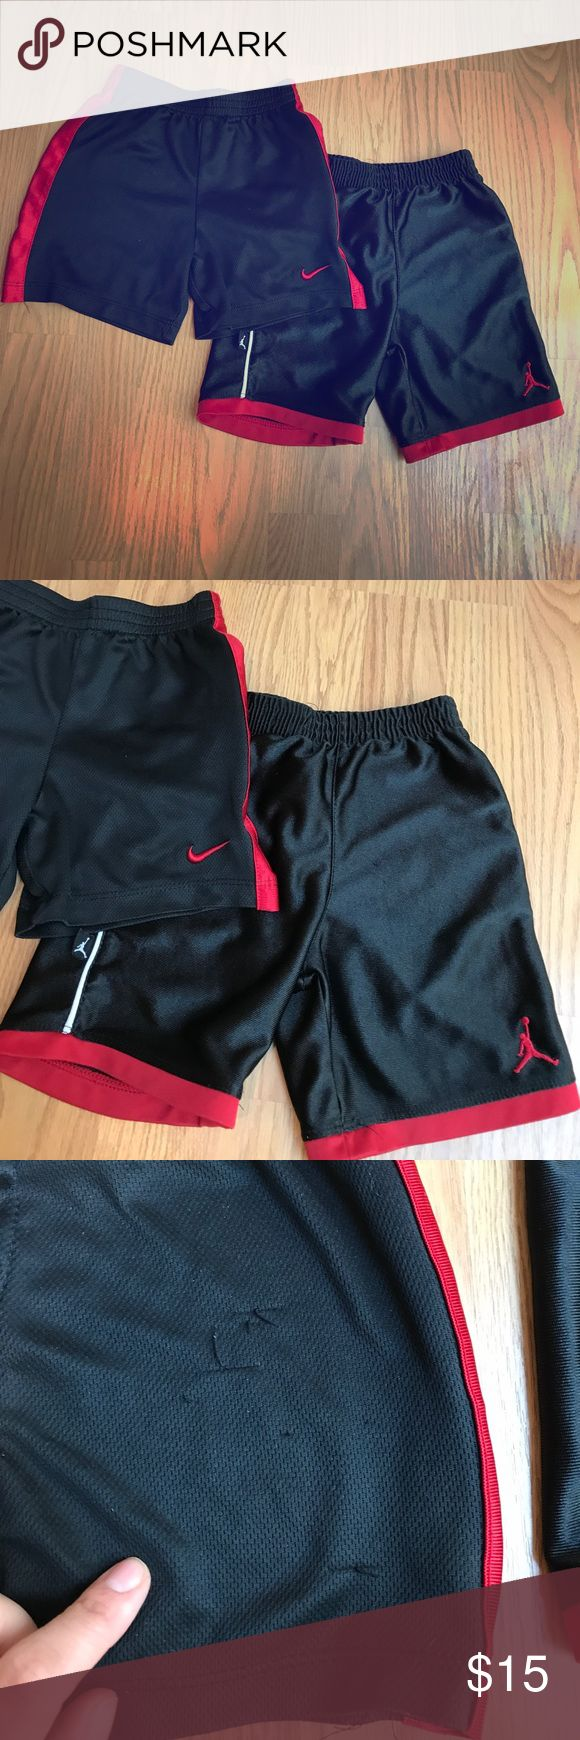 Toddler Boys Nike & Jordan Basketball Shorts 2 for 1 deal! Toddler Boys Nike and Jordan basketball shorts. Both shorts are black and red. The Nike shorts have a couple snags. Nike Bottoms Shorts